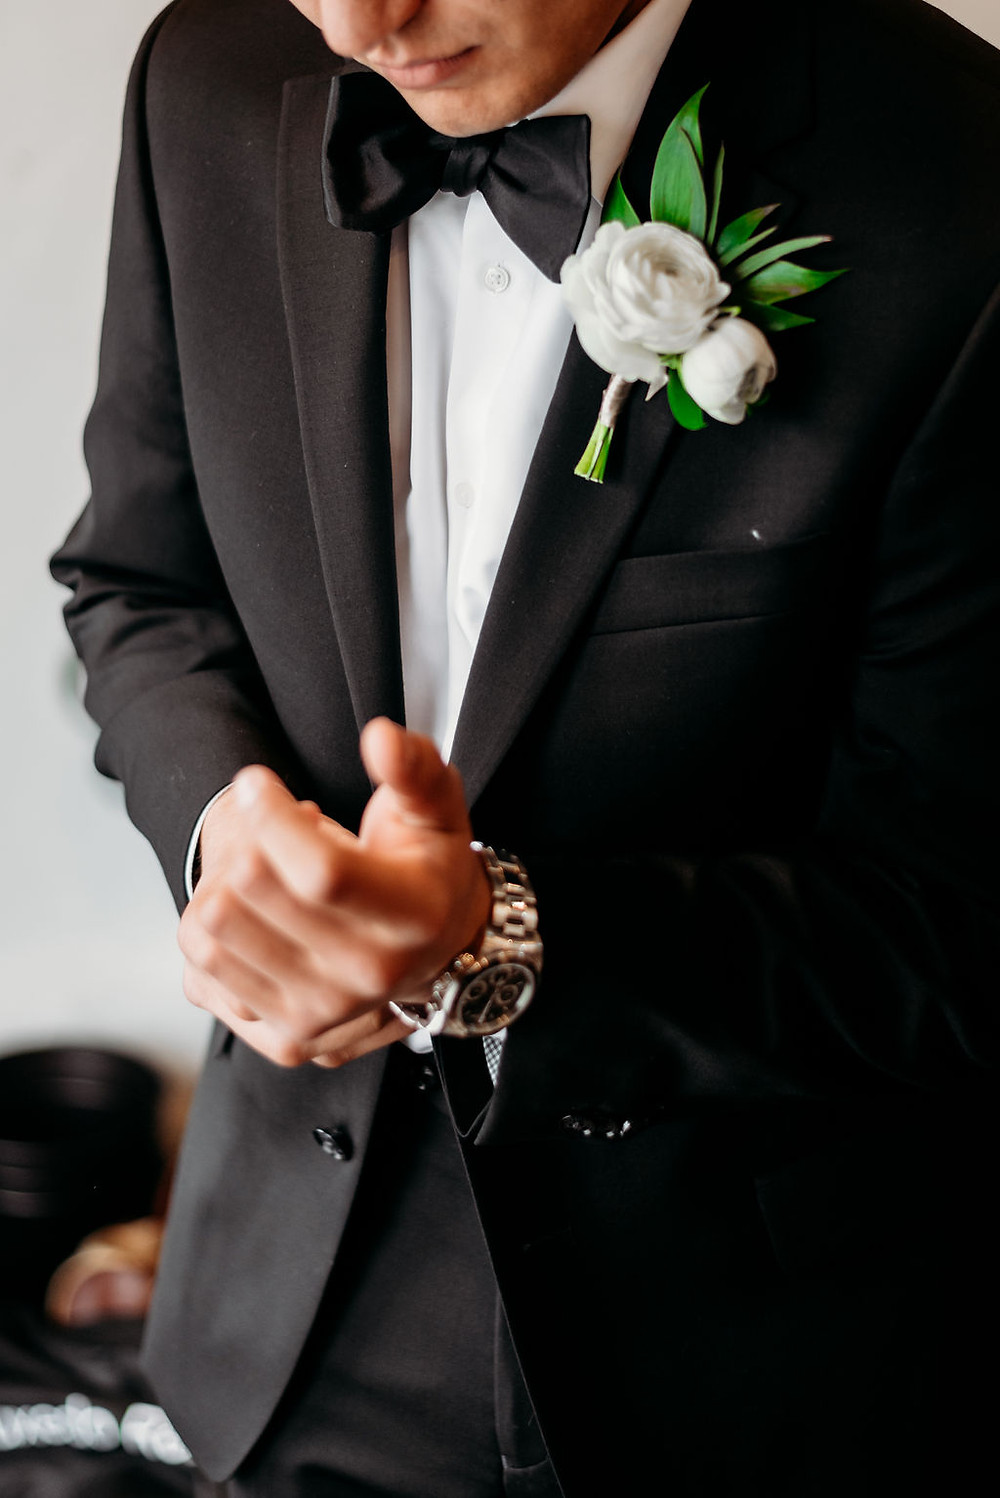 groom puts on watch. close up detail photo pre-wedding